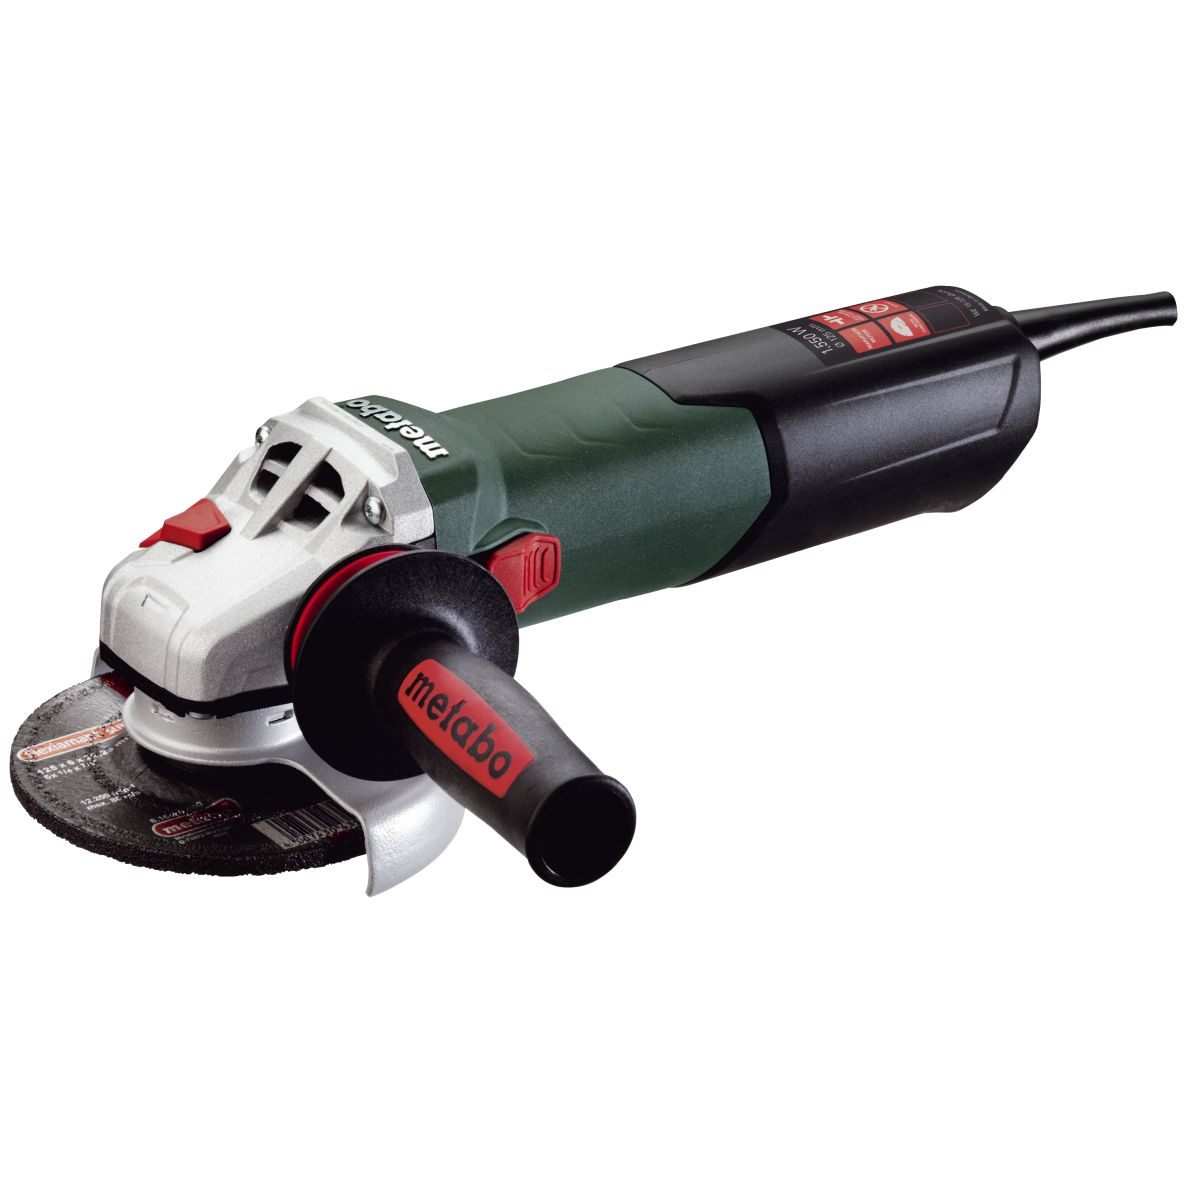 Admirable Metabo We 15 125 Quick 5 Angle Grinder 110V Gmtry Best Dining Table And Chair Ideas Images Gmtryco